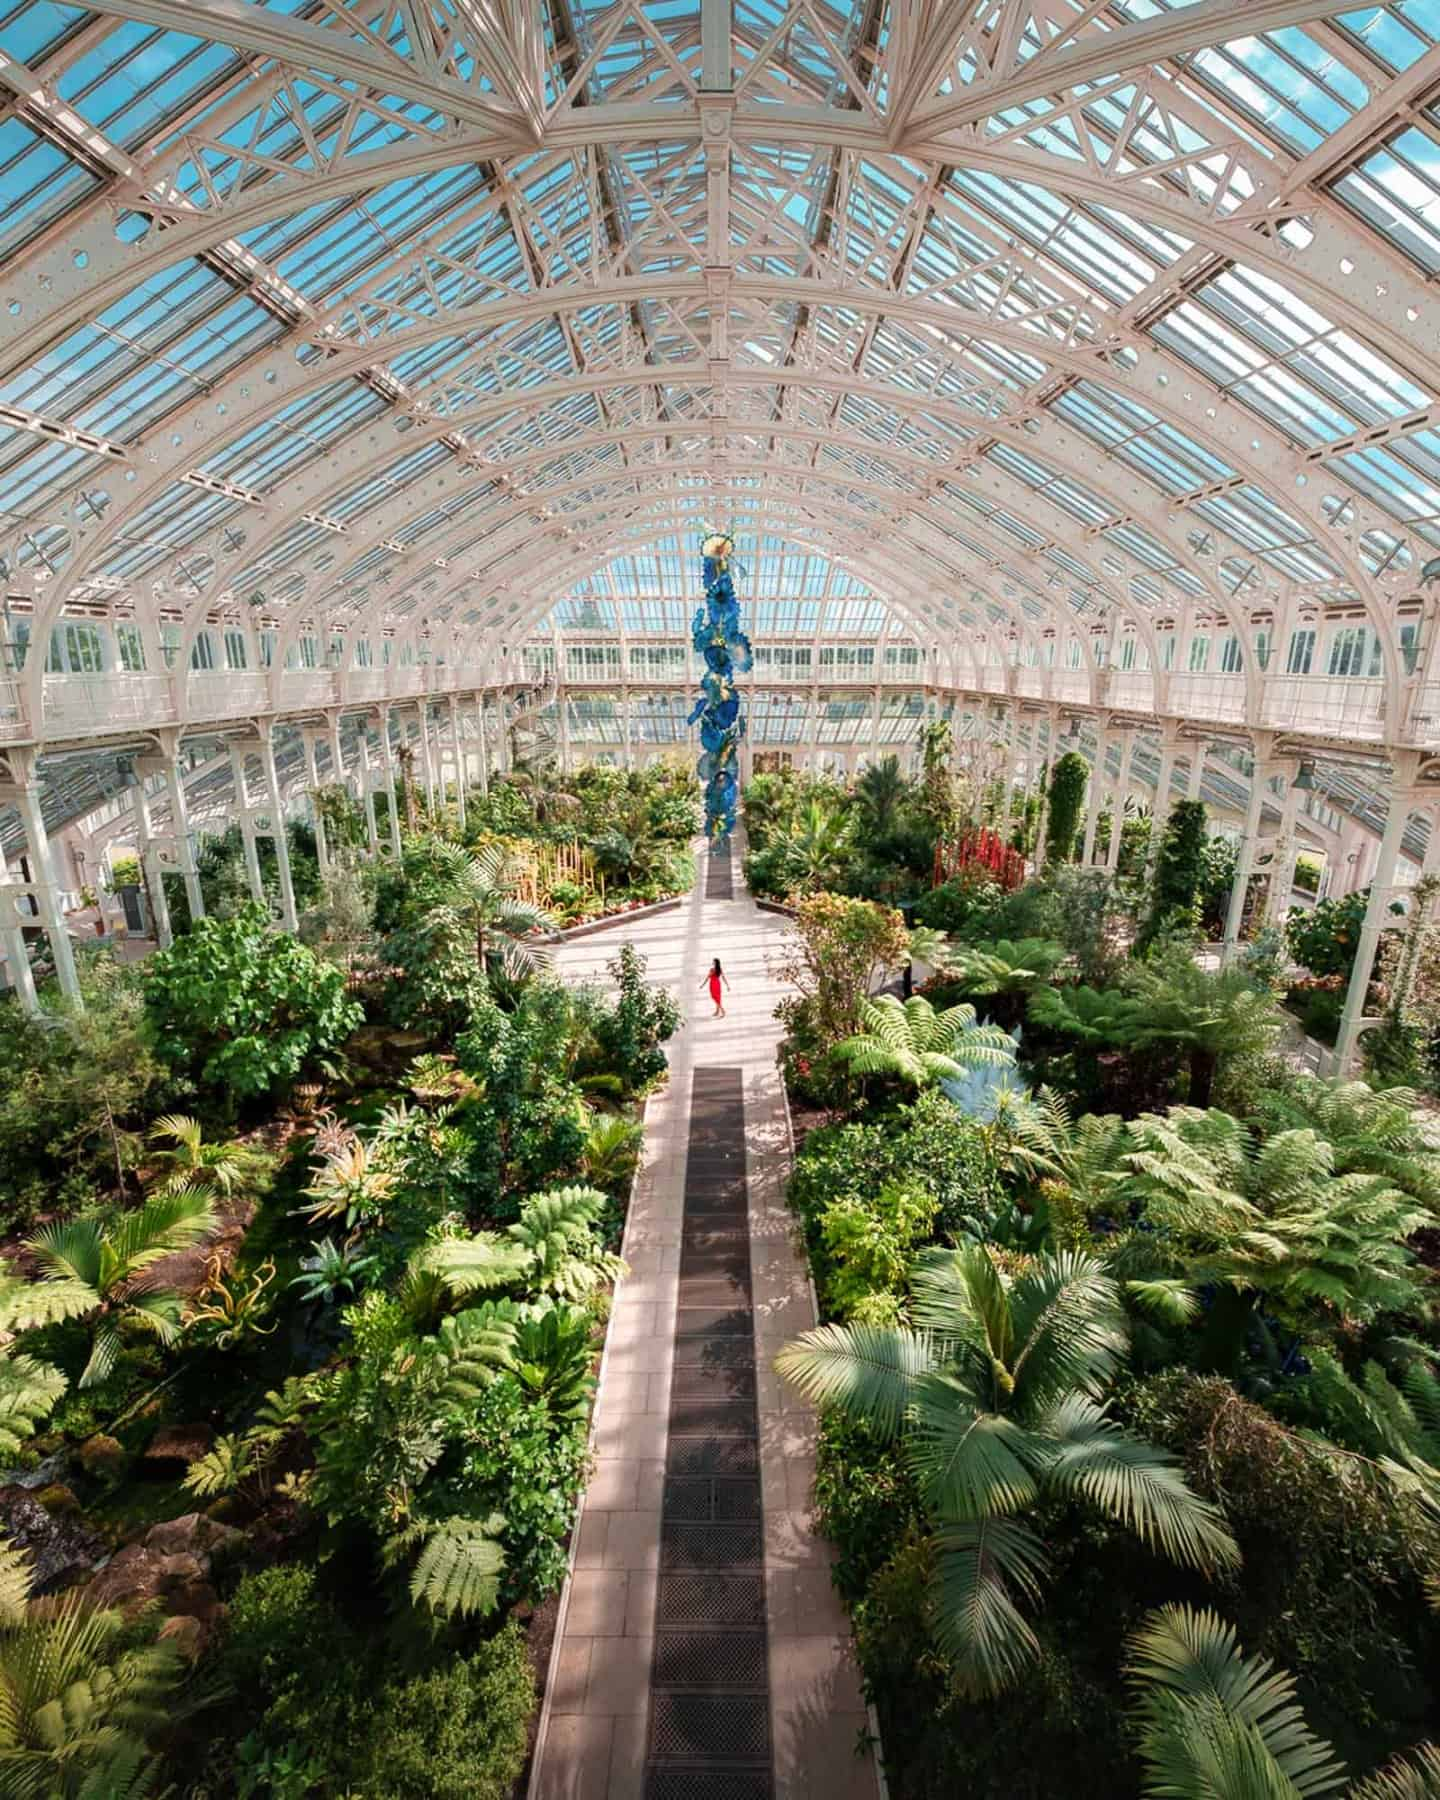 Temperate House at Kew Gardens London - one of the most instagrammable places in London